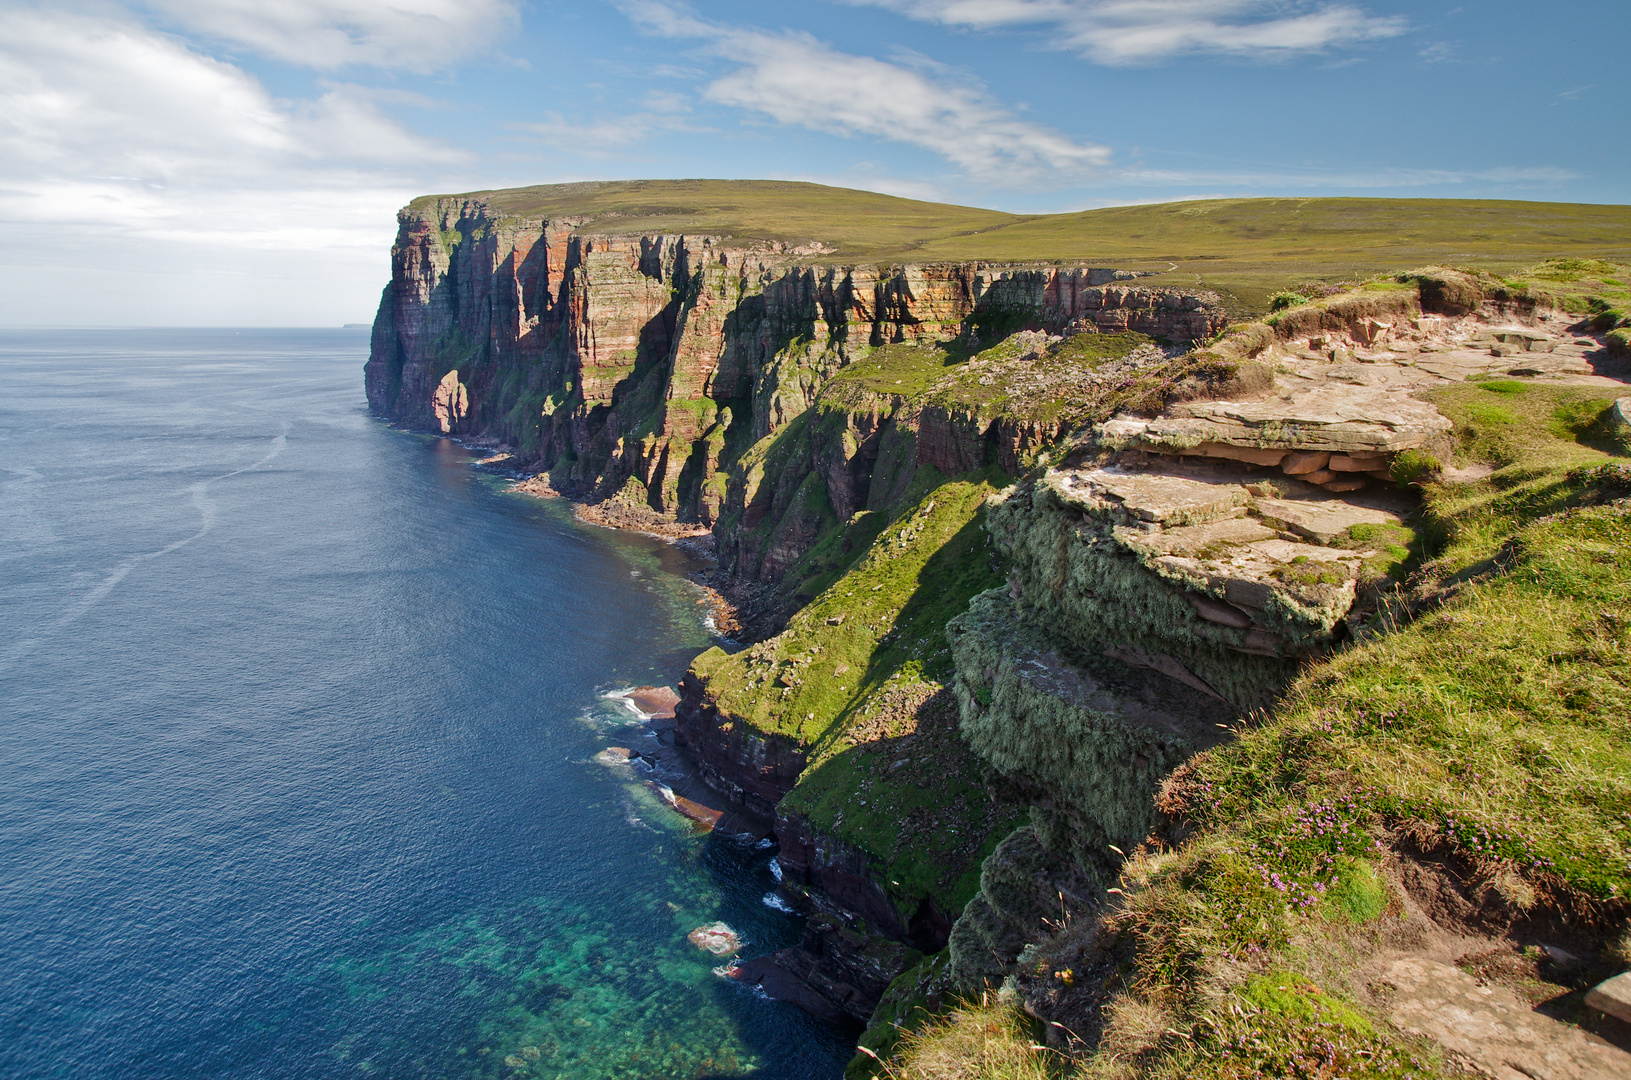 St. Johns Head - Isle of hoy